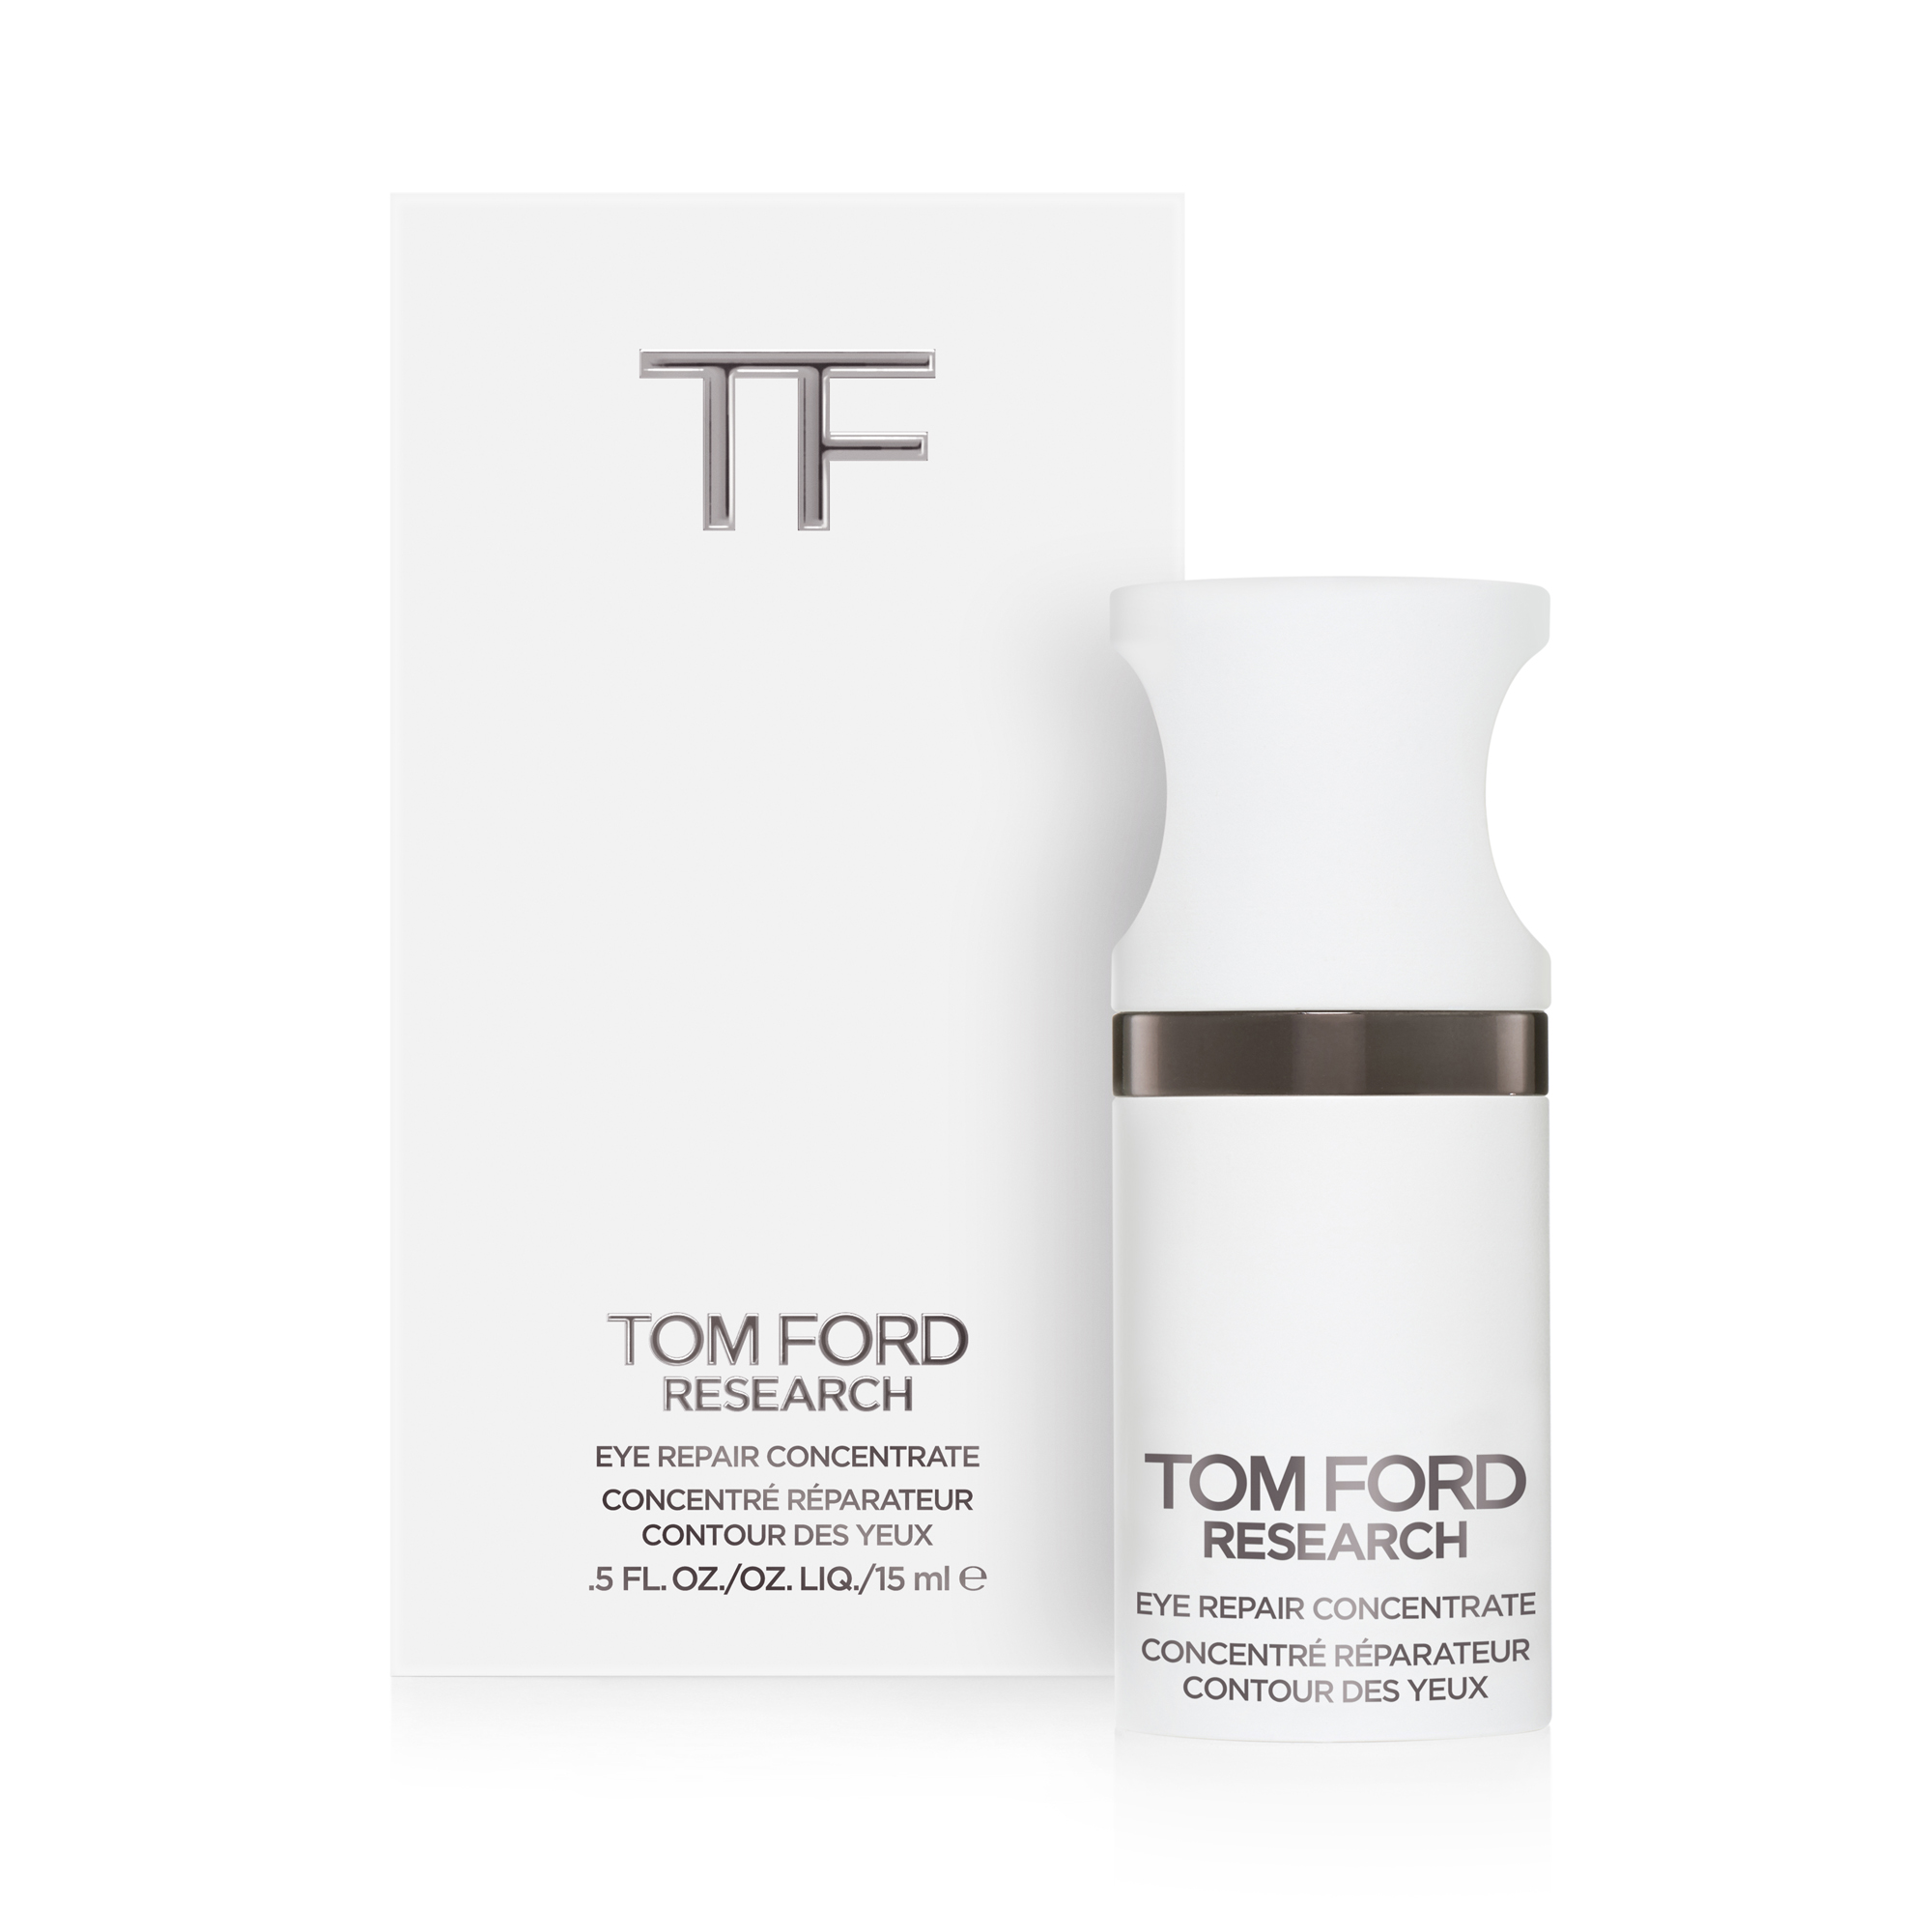 Tom Ford Research Eye Cream. Photo: Tom Ford Research